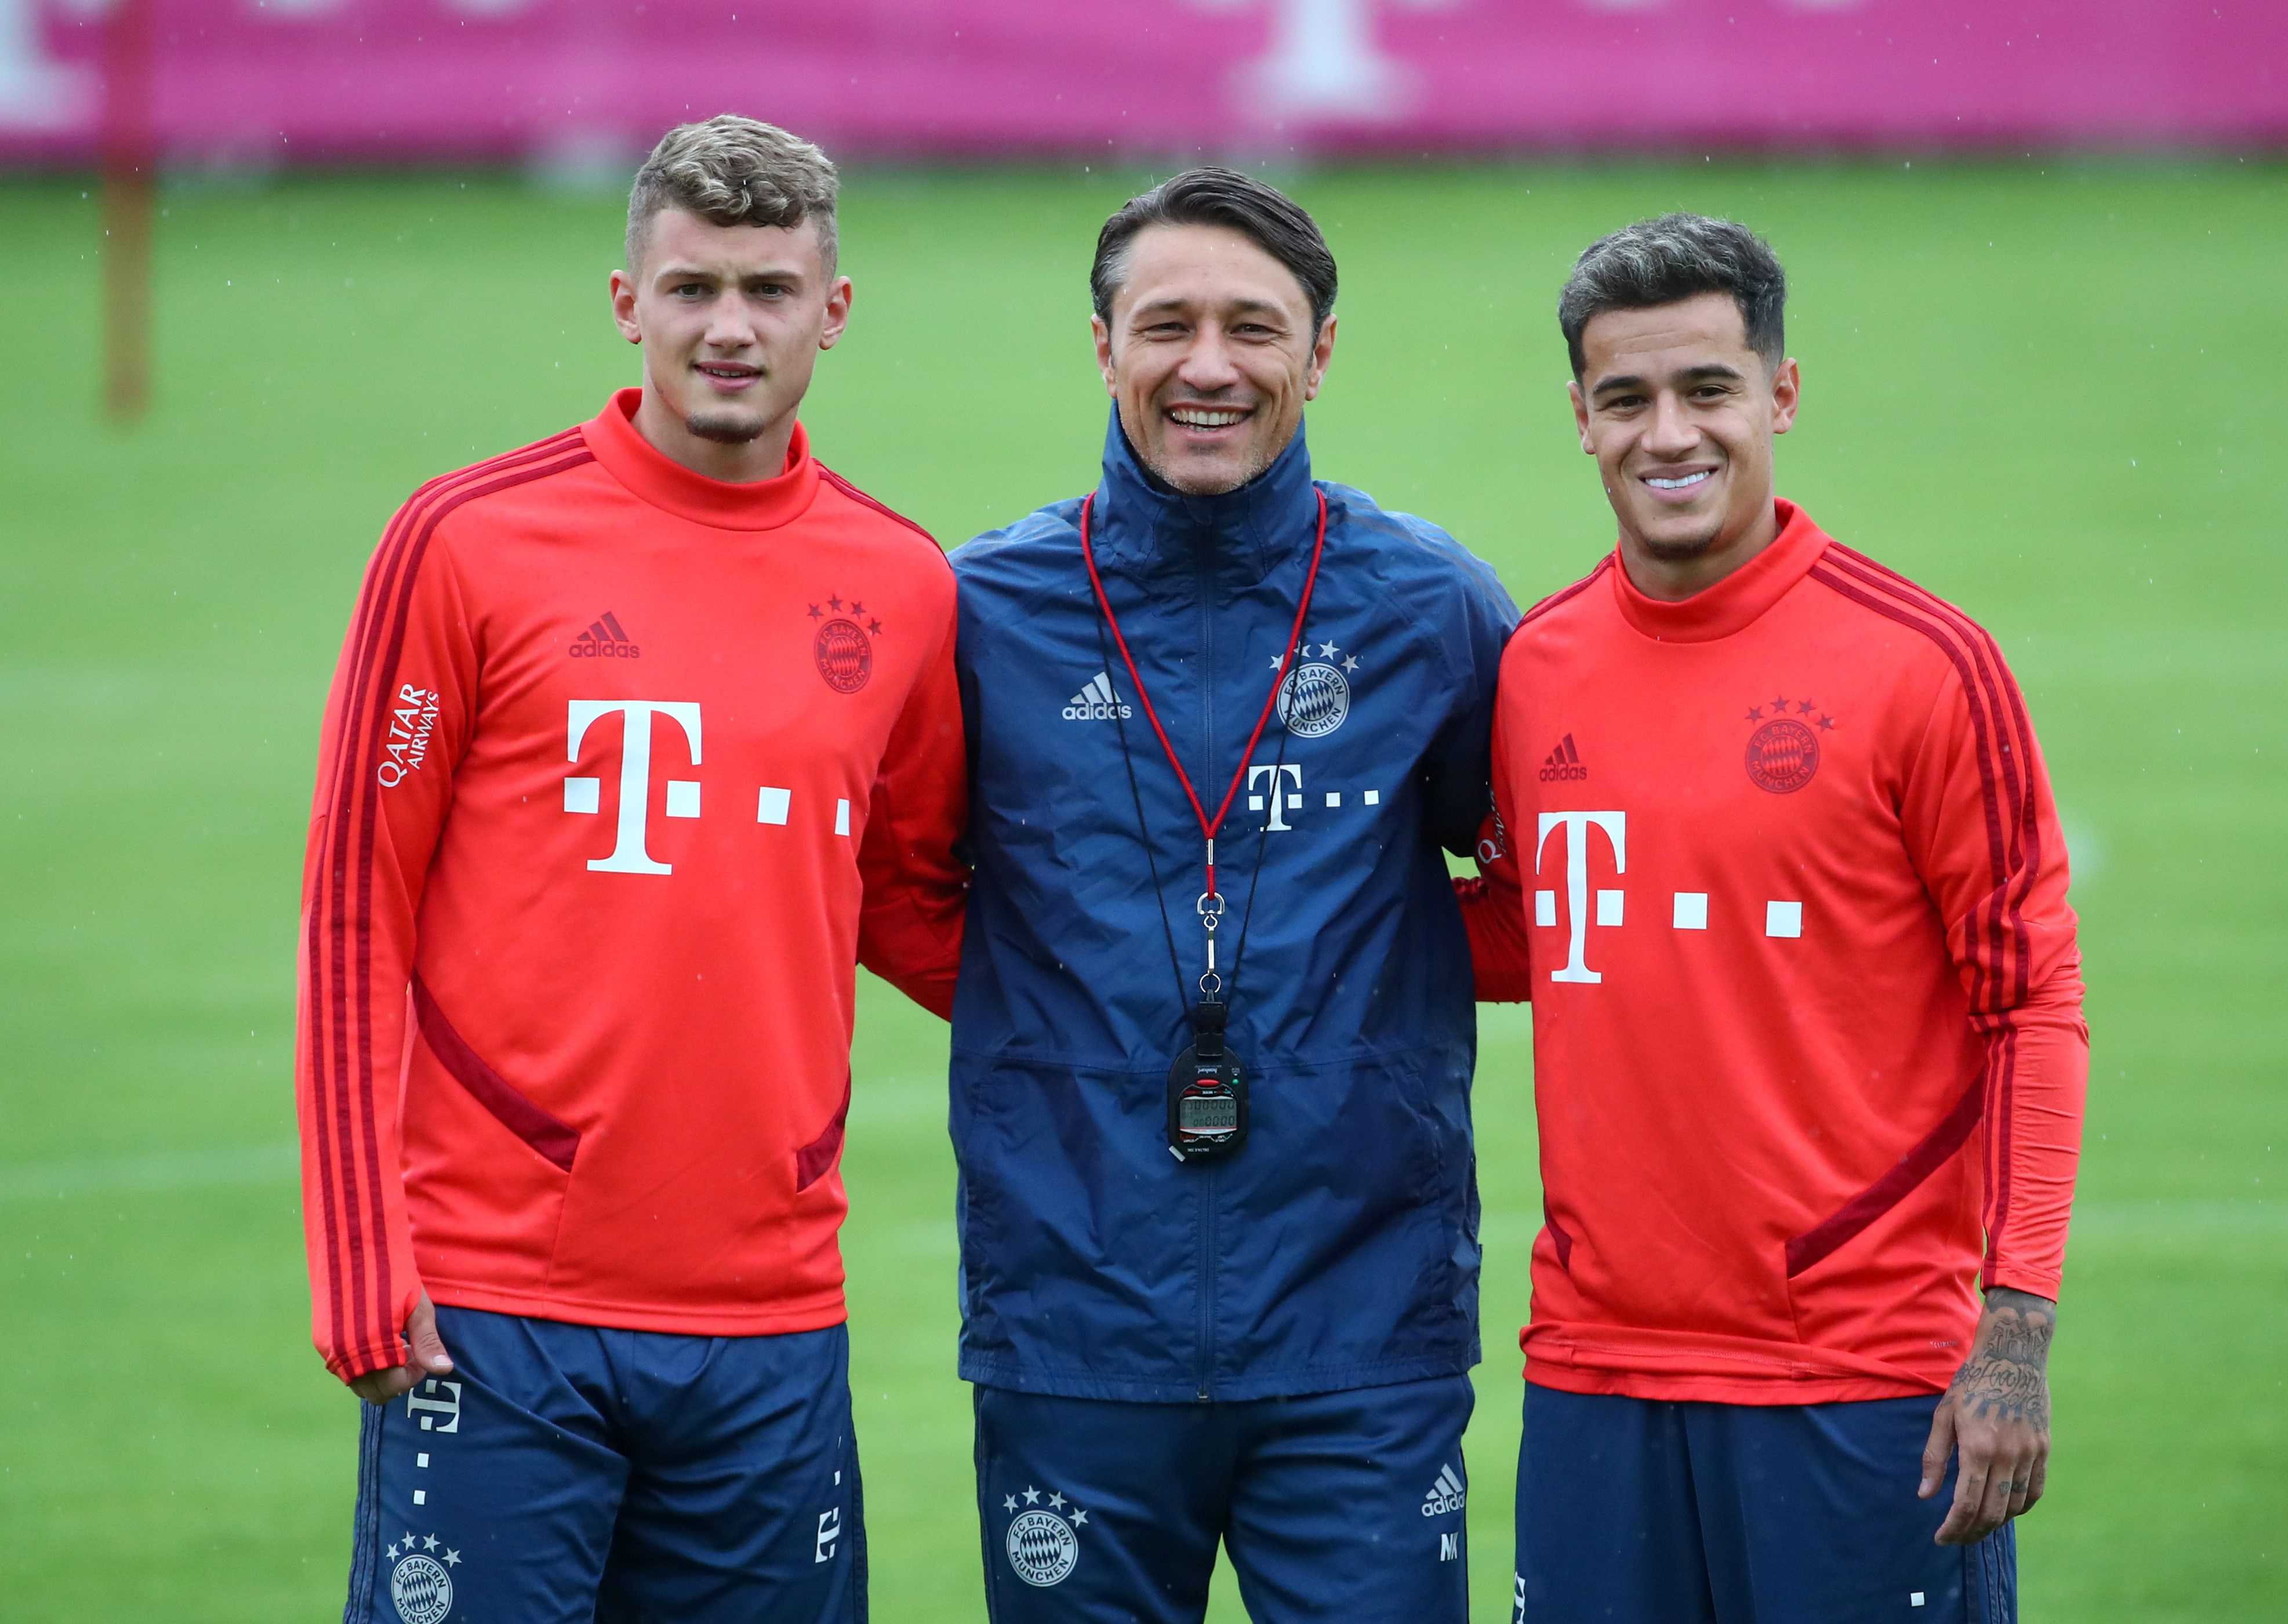 Top 5 managers to replace Niko Kovac - Bayern Munich next manager odds